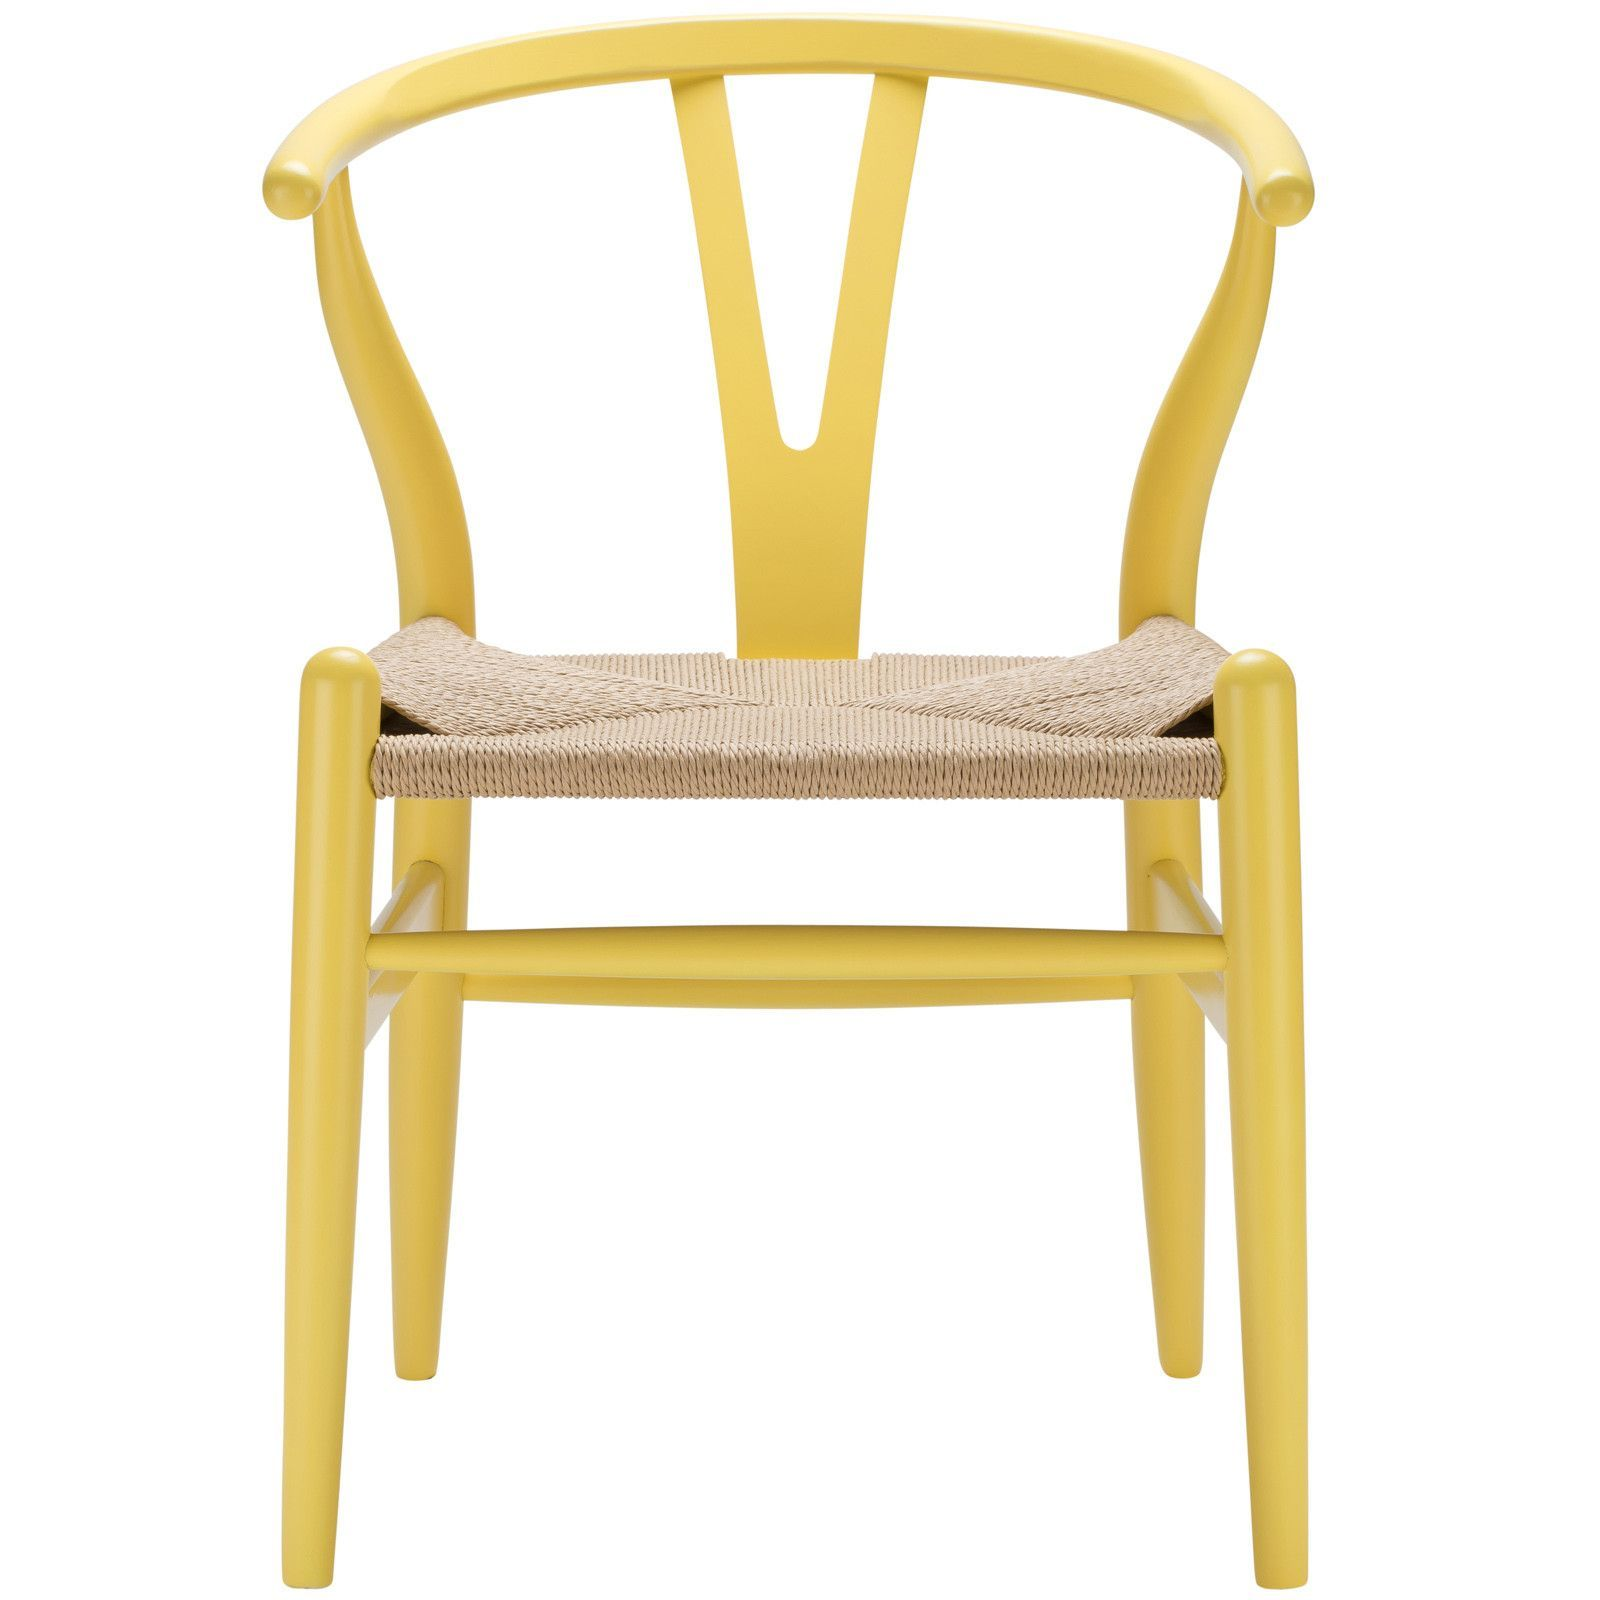 Weave Chair in Yellow